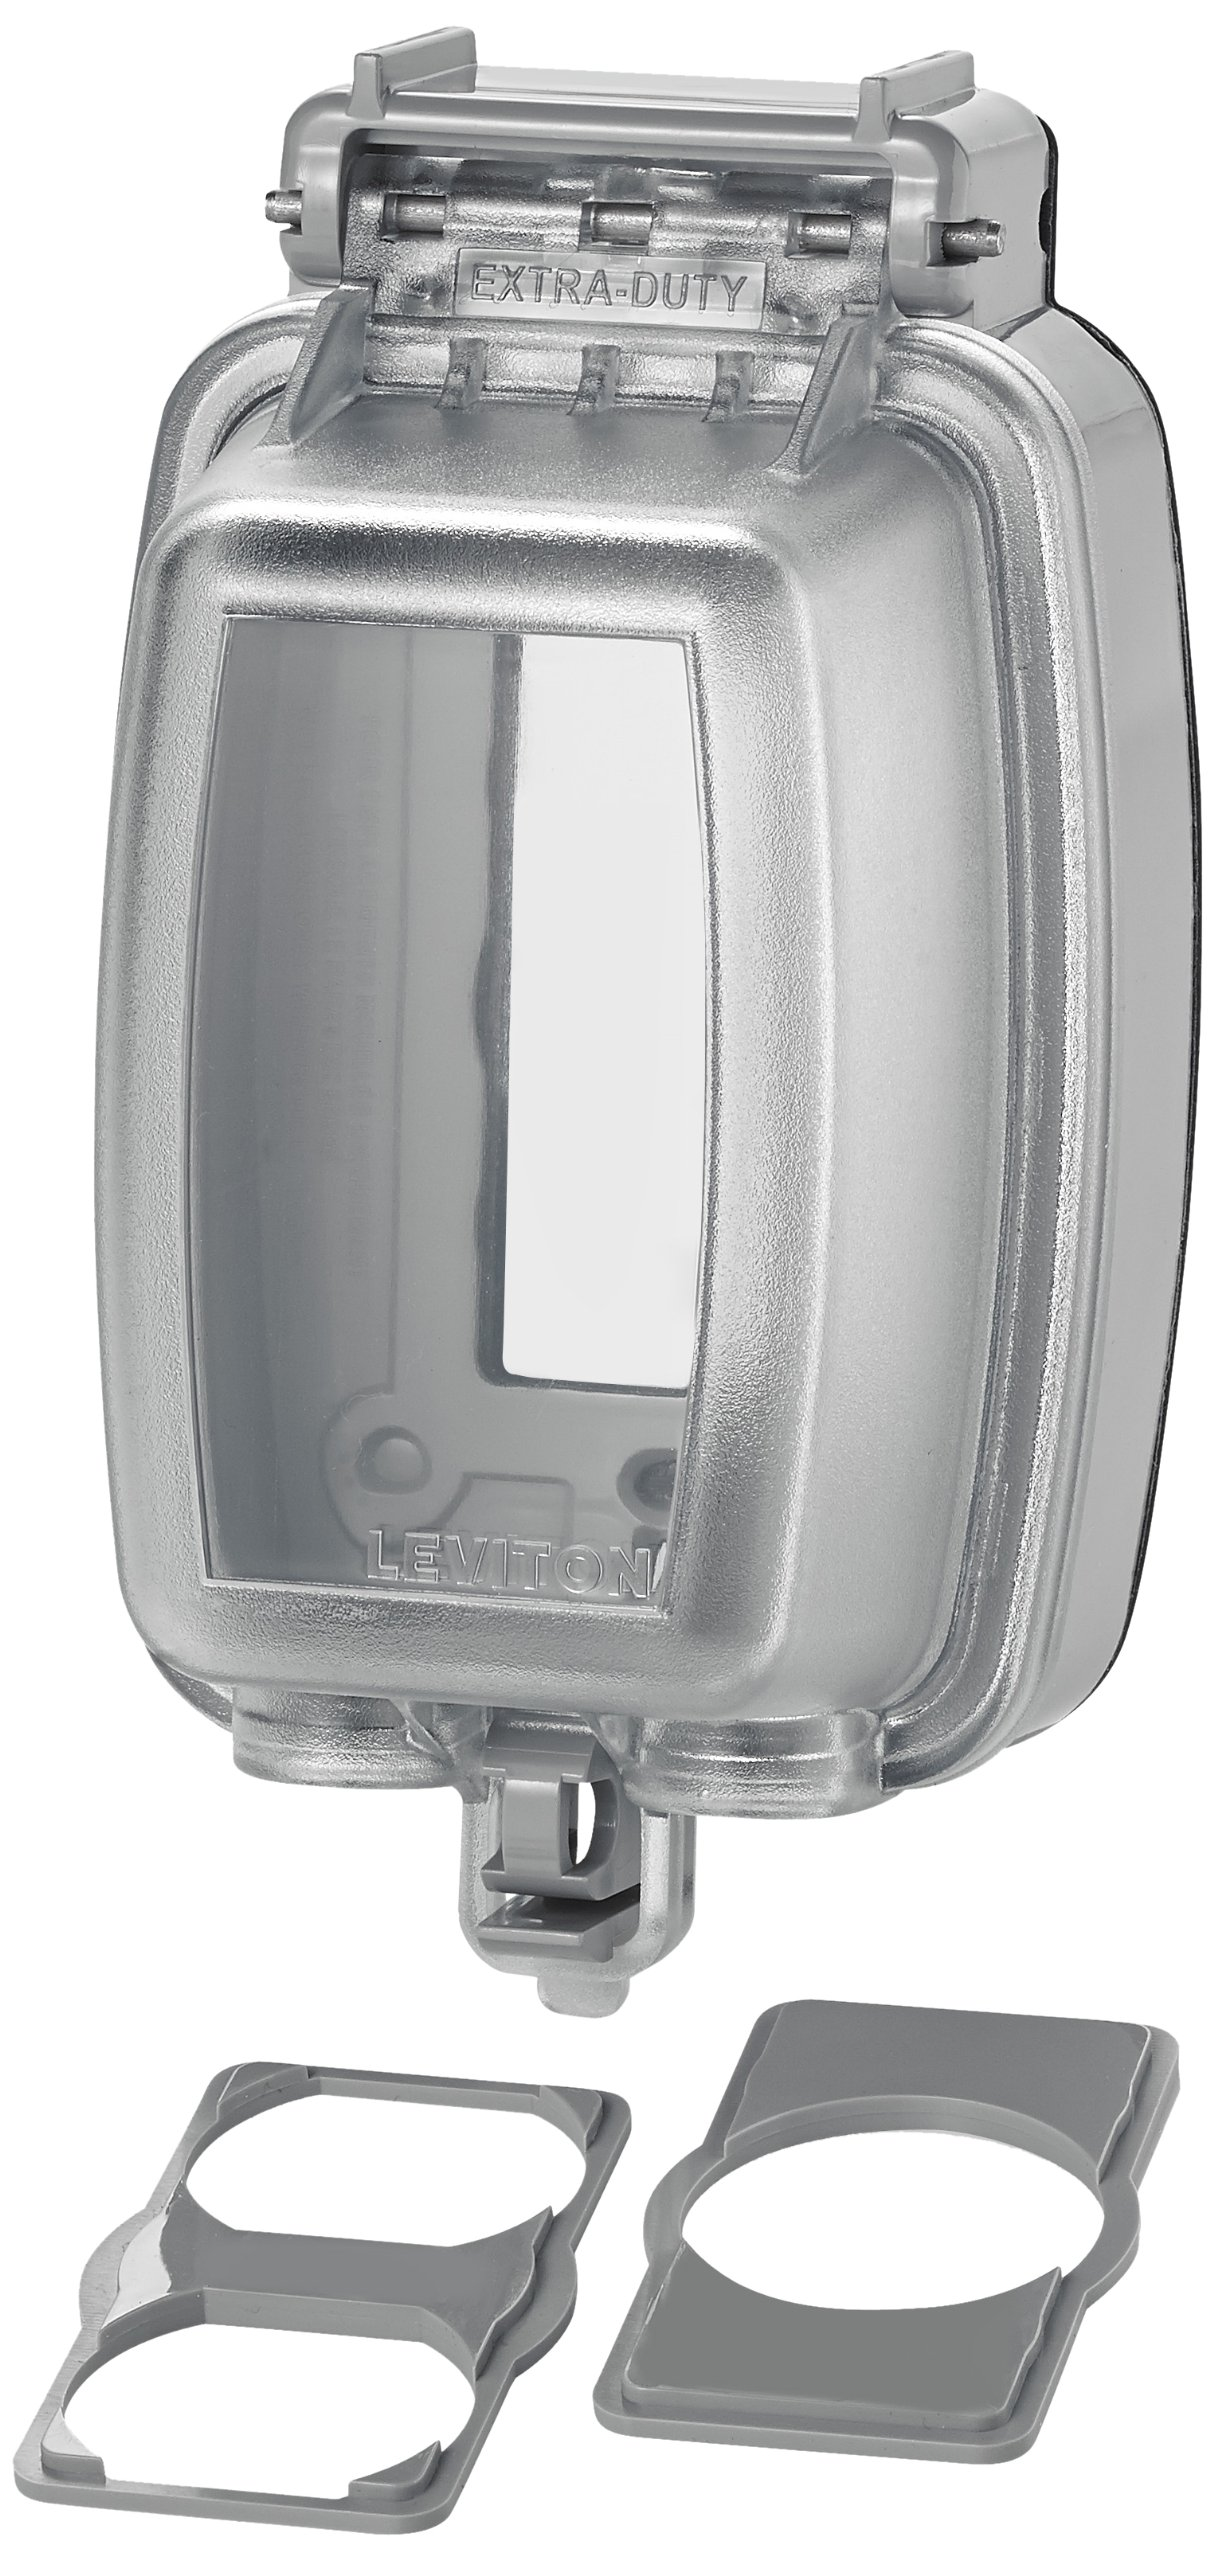 Leviton 5980-UCL Vertical While-in-Use Cover for GFCI/Decora Duplex and Single Outlet, Clear by Leviton